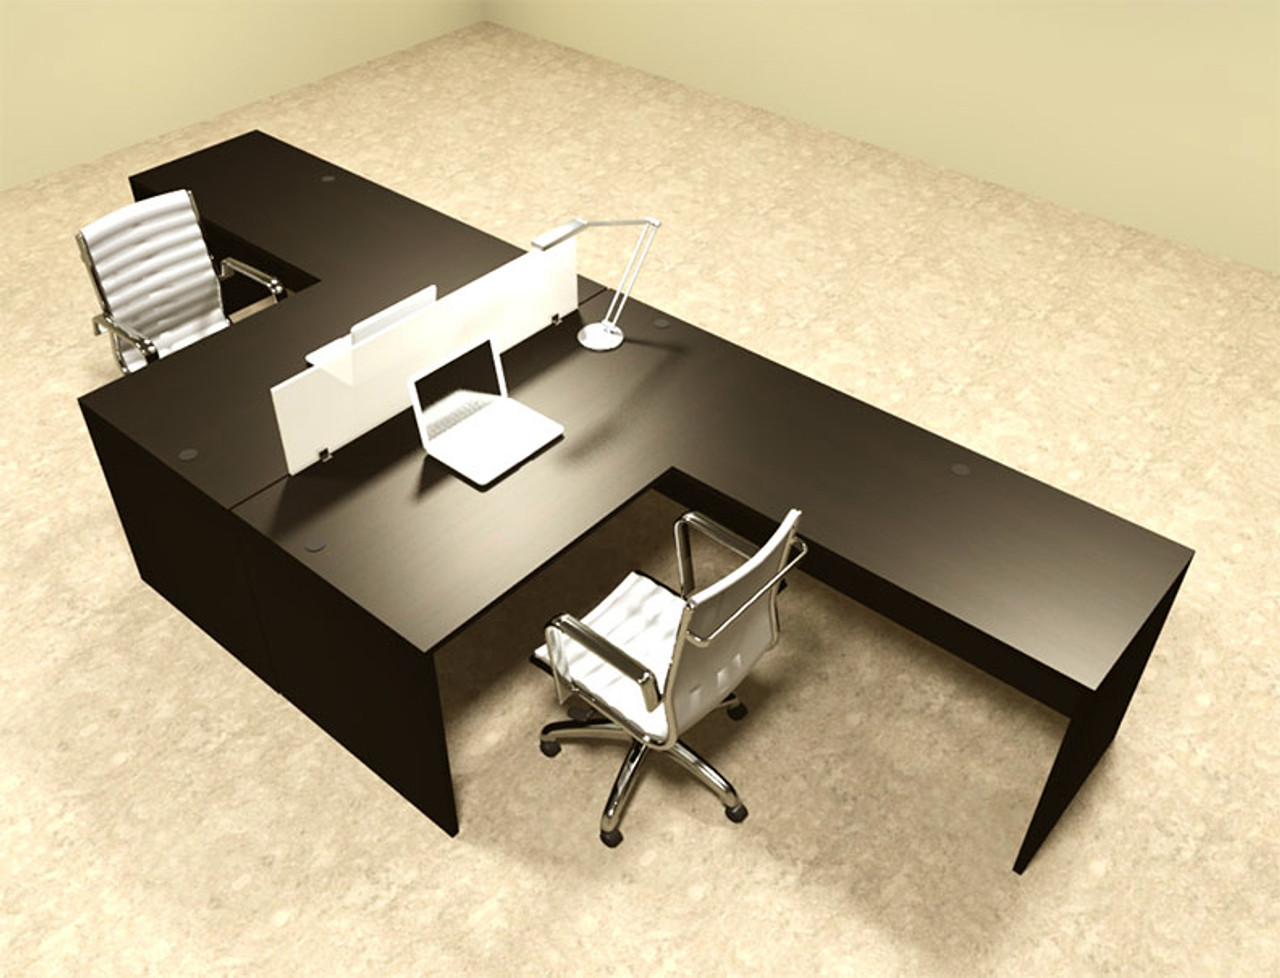 new products 0c845 70c6c Two Person L Shaped Modern Divider Office Workstation Desk Set, #OT-SUL-FP28